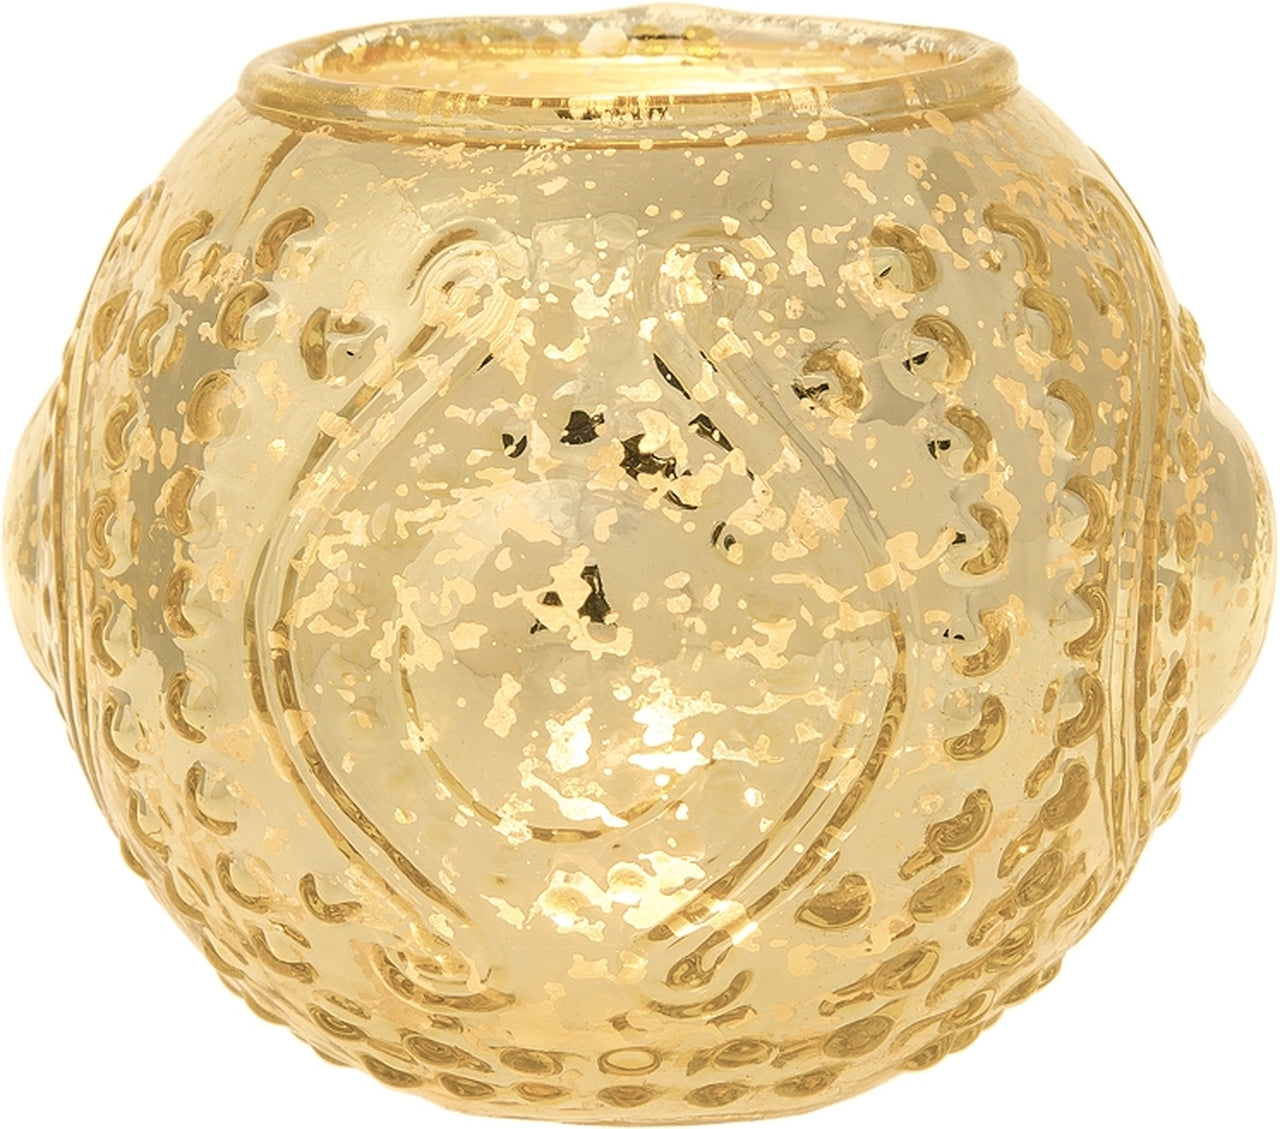 BLOWOUT Mercury Glass Candle Holder (5.75-Inches, Large Josephine Design, Gold) - Use with Tea lights - for Home Decor, Parties and Wedding Decorations